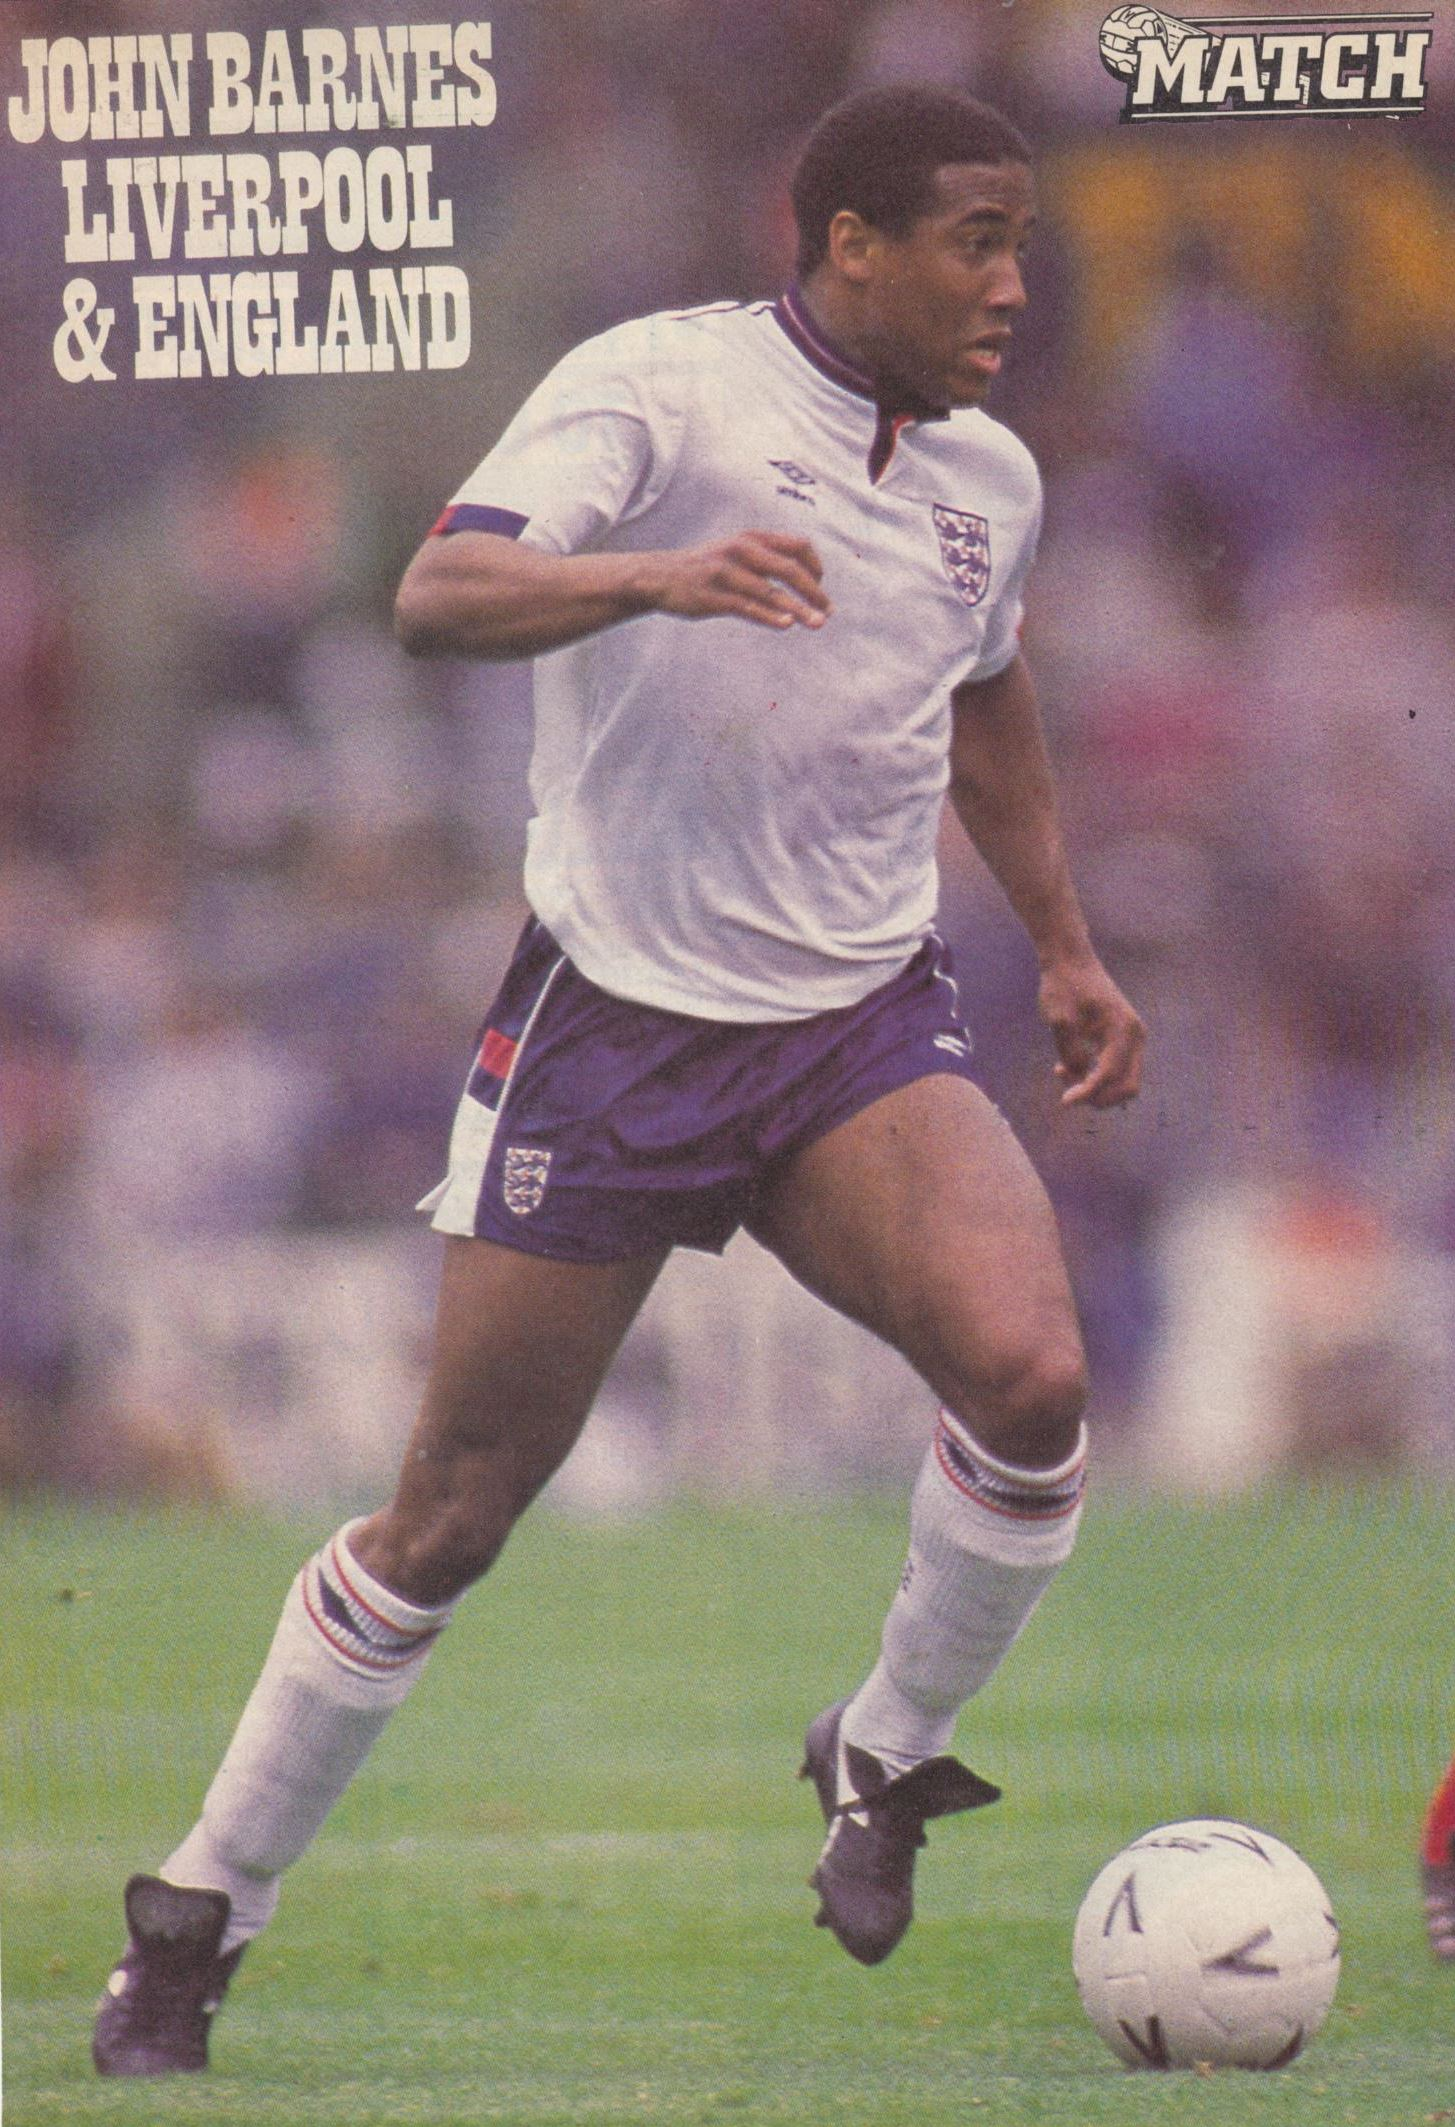 Match poster of Barnes in England's white